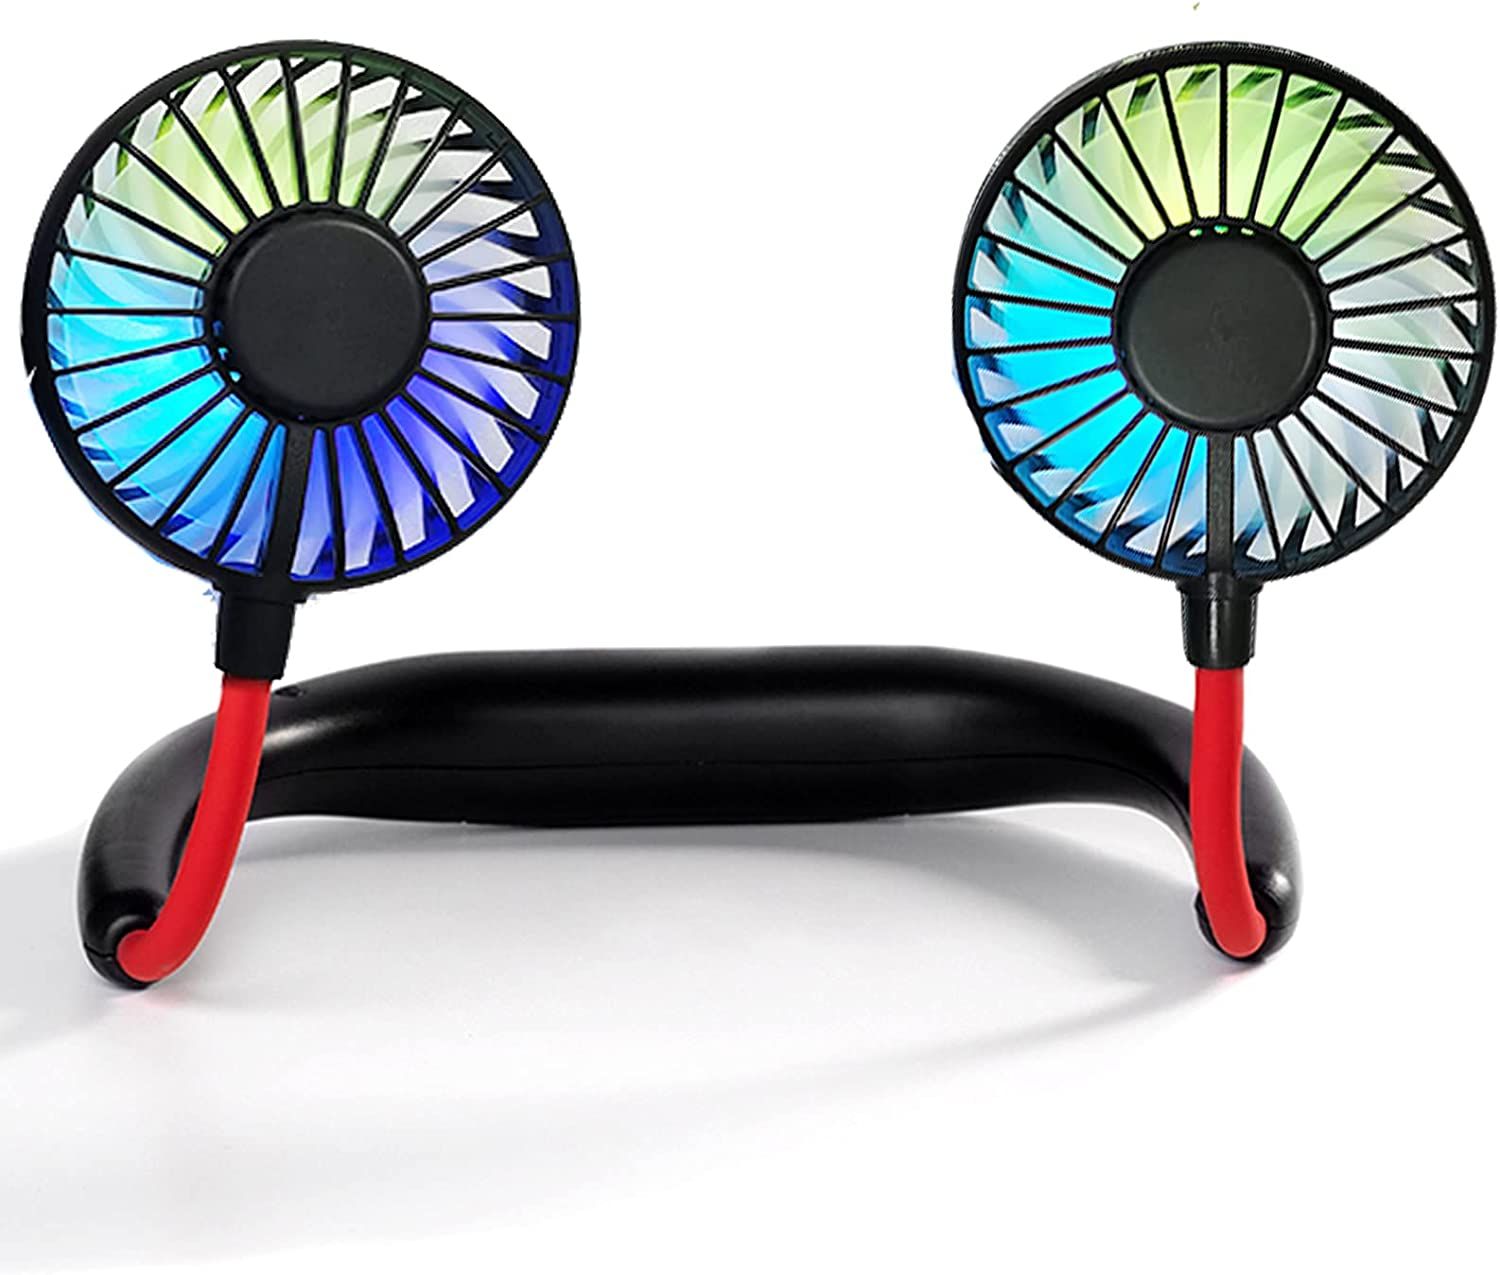 Coolingstyle Portable Wearable Neck Fan Hand Free Personal Mini USB Recharged Fan with 3 Level Air Flow, 7 LED lights, 360 Degree Free Rotation personal cooling fan handheld portable fans,Wearable neck fan Suitable for Traveling ,Fishing, Office,Shopping